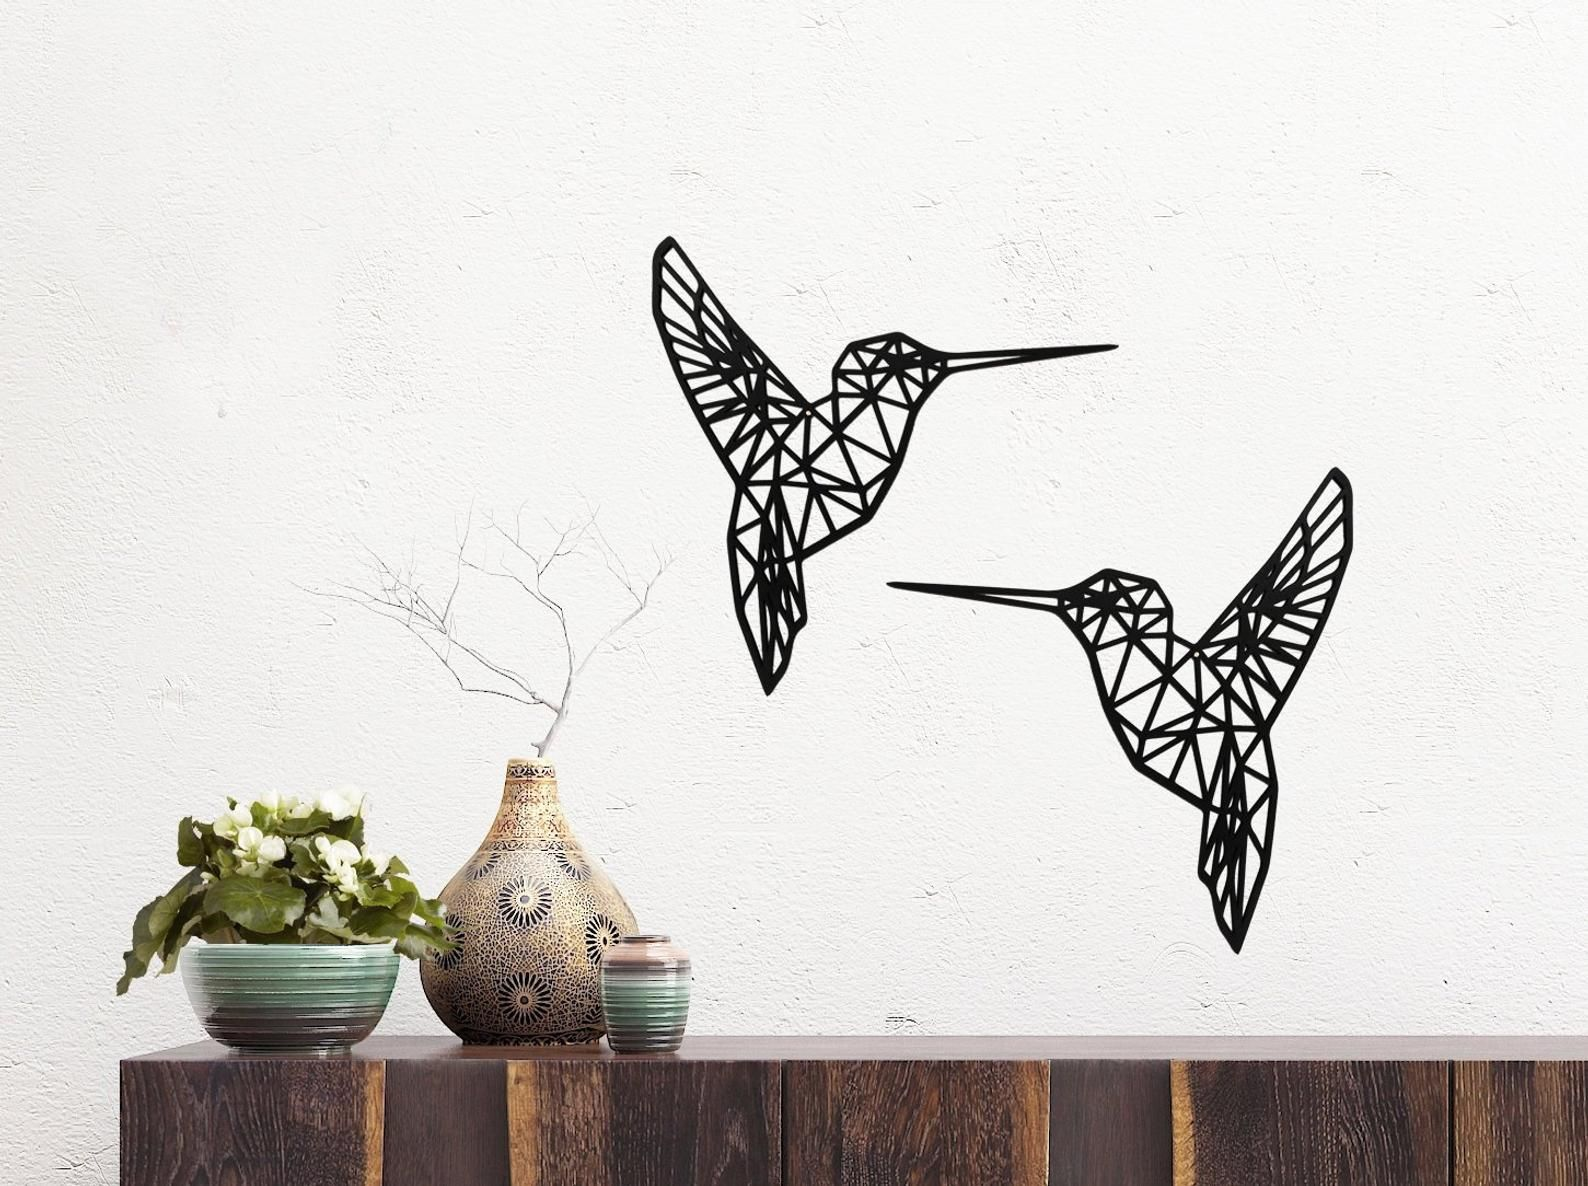 Geometric Hummingbird Wall Art Geometric Animal Wood Home Decor Wall Decal Woodland Decor Industrial Wall Decor Bos Decor Geometrische Kunst Aan De Muur Badkamer Kunst Aan De Muur